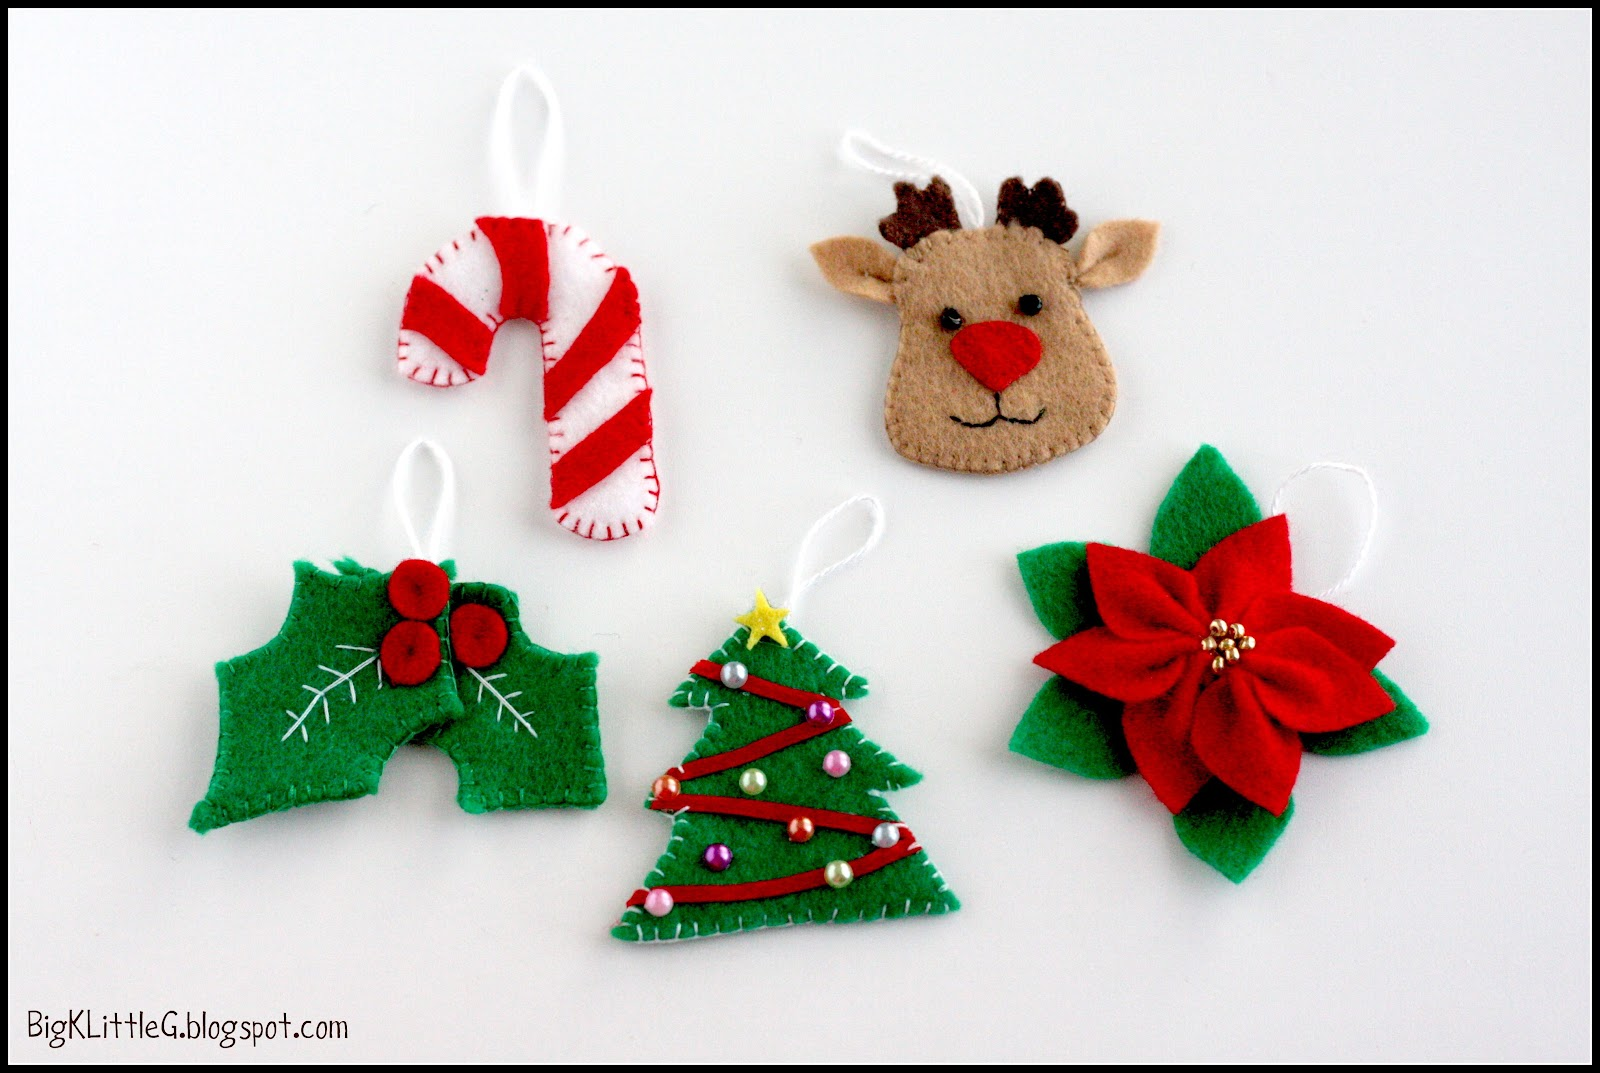 Reindeer Decorations To Make